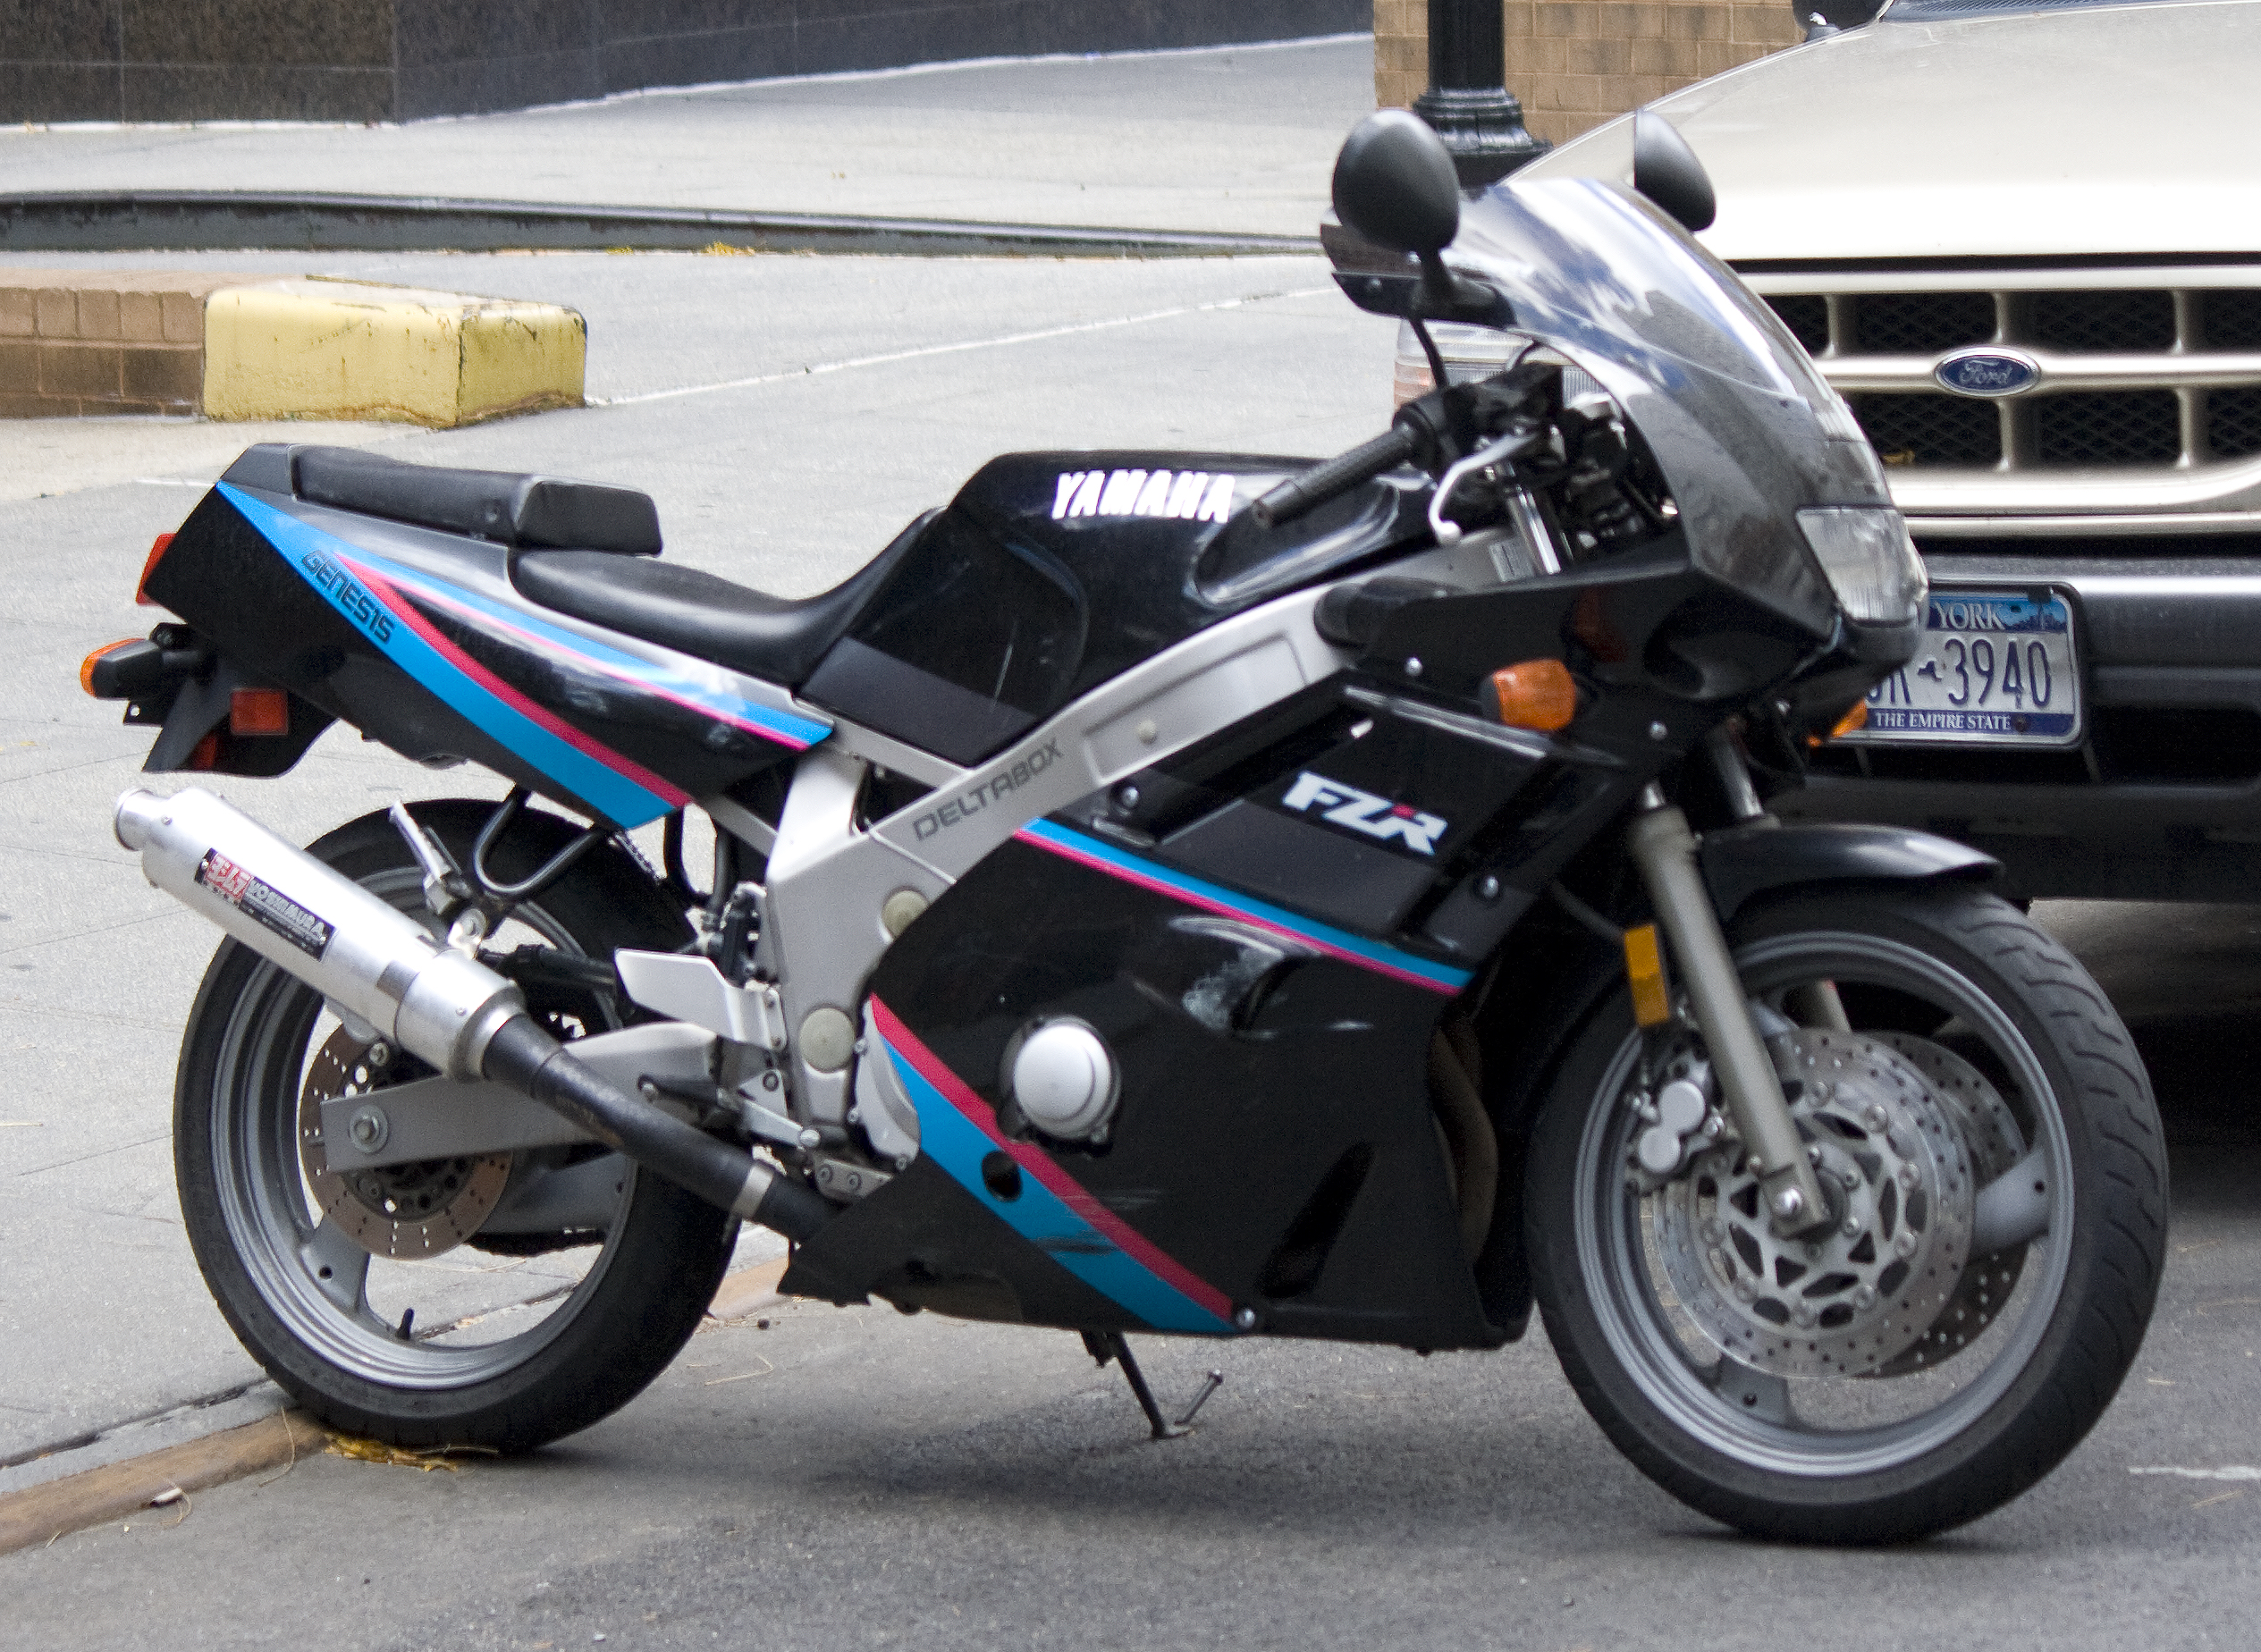 fzr 600 wiring diagram on fzr images free download wiring diagrams Yamaha Fzr 600 Wiring Diagram 1991 yamaha fzr 600 zx14 wiring diagram chevrolet wiring diagram yamaha fzr 600 wiring diagram